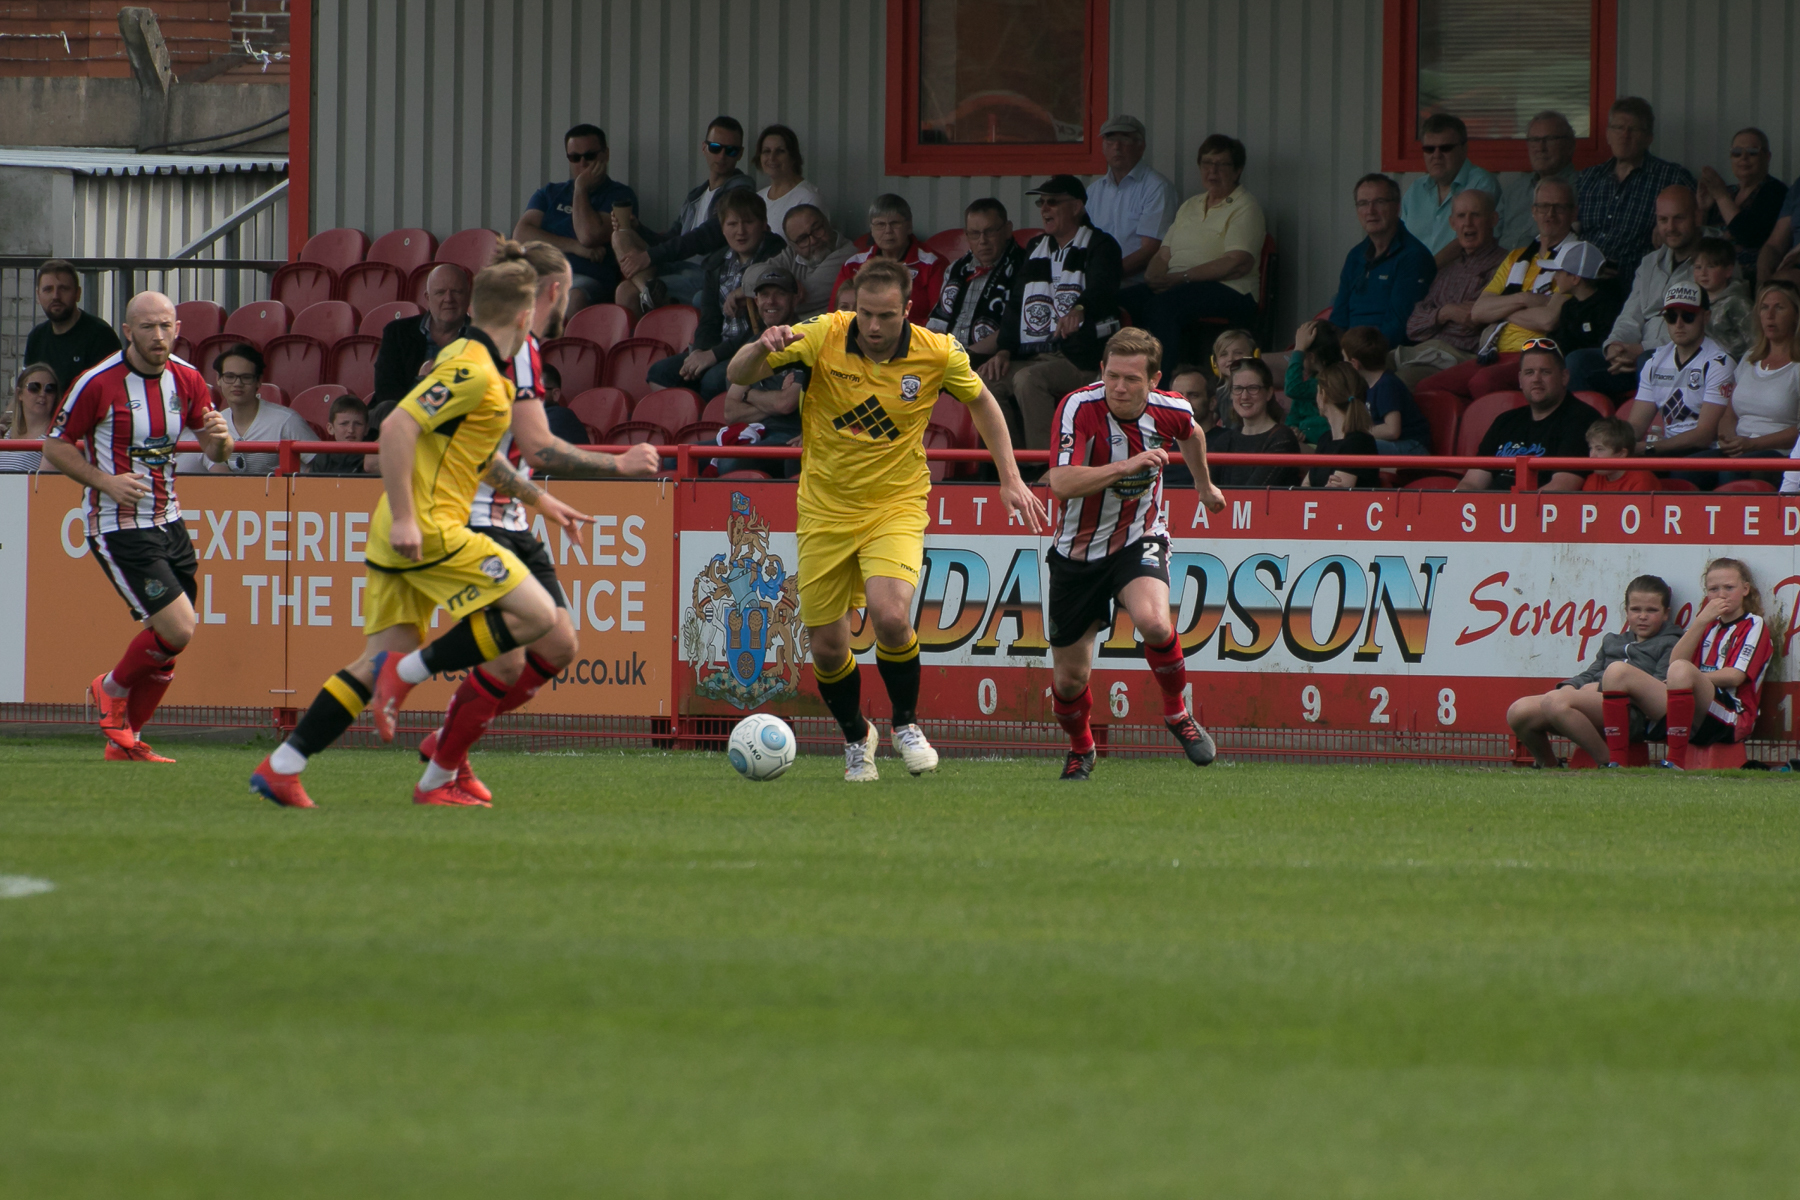 Mike Symons in action against Altrincham. Picture: Andy Walkden/Hereford FC